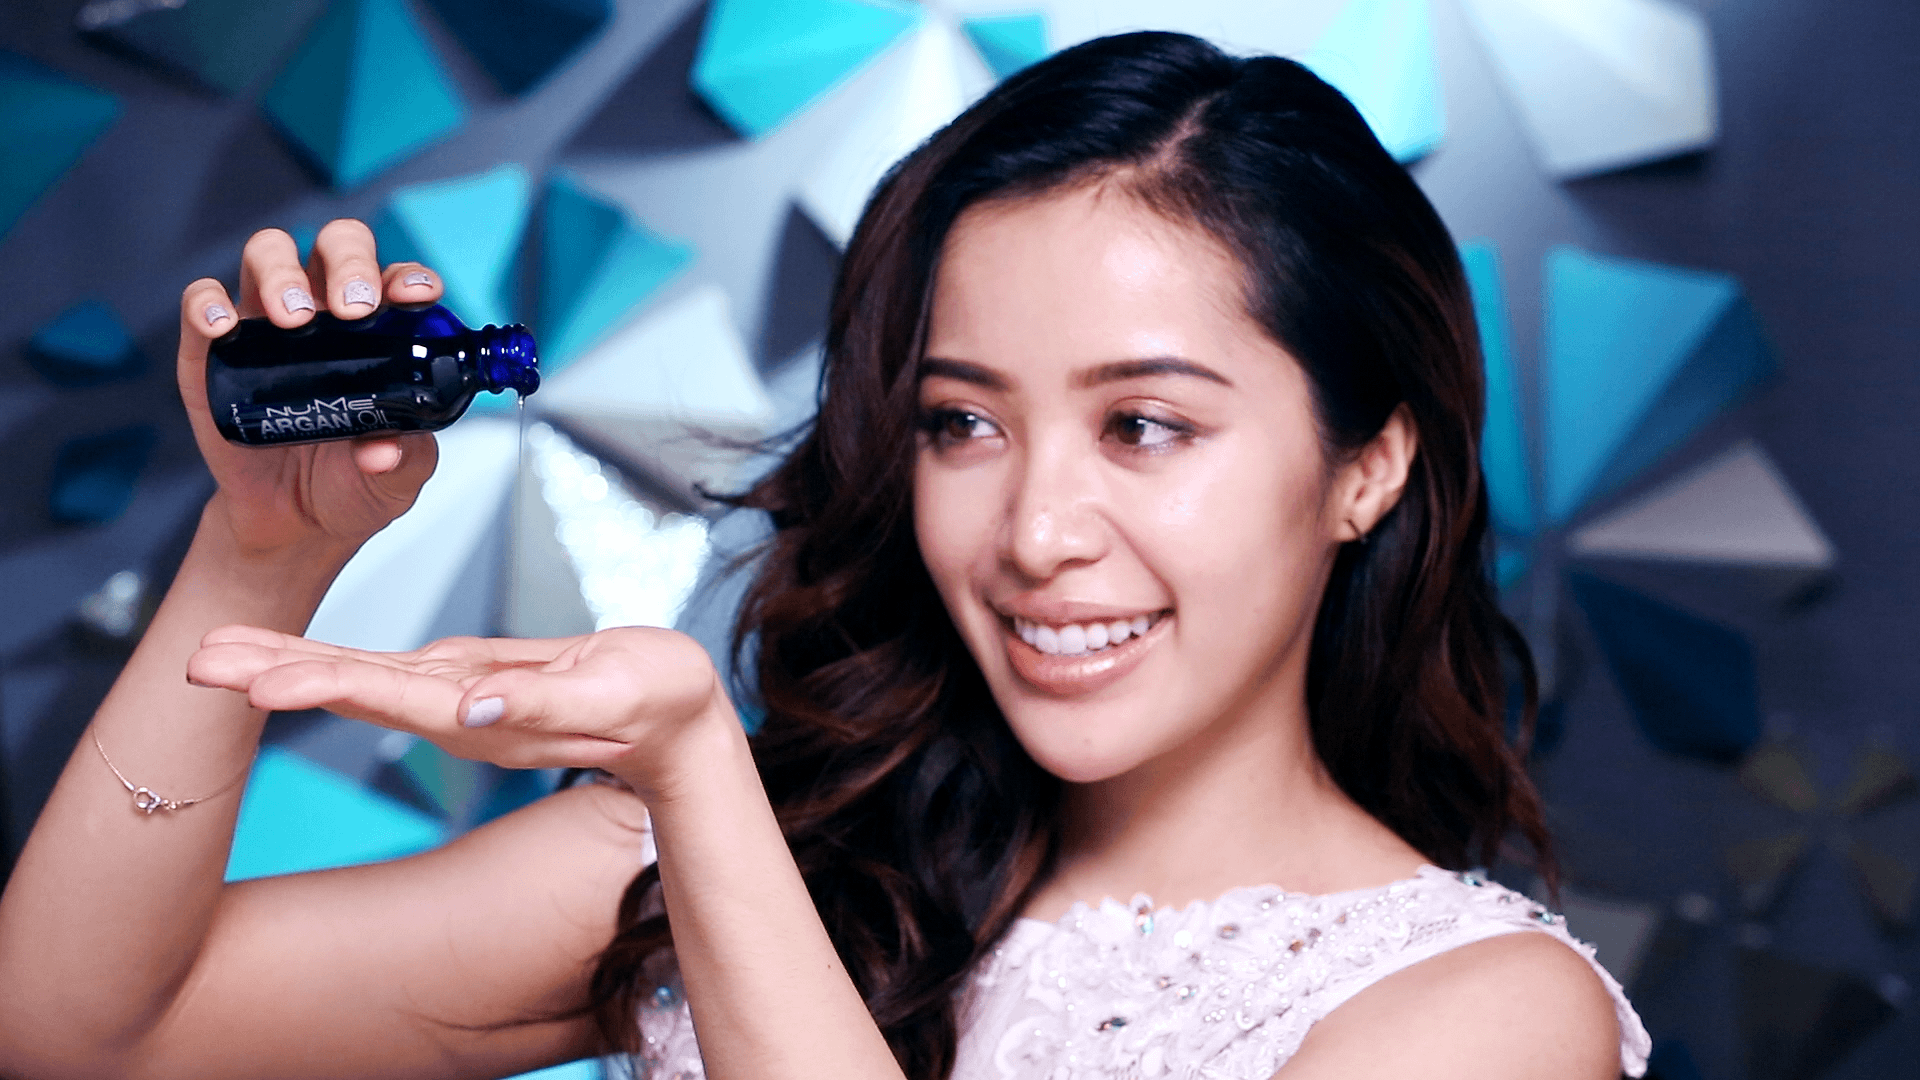 Michelle Phan Background